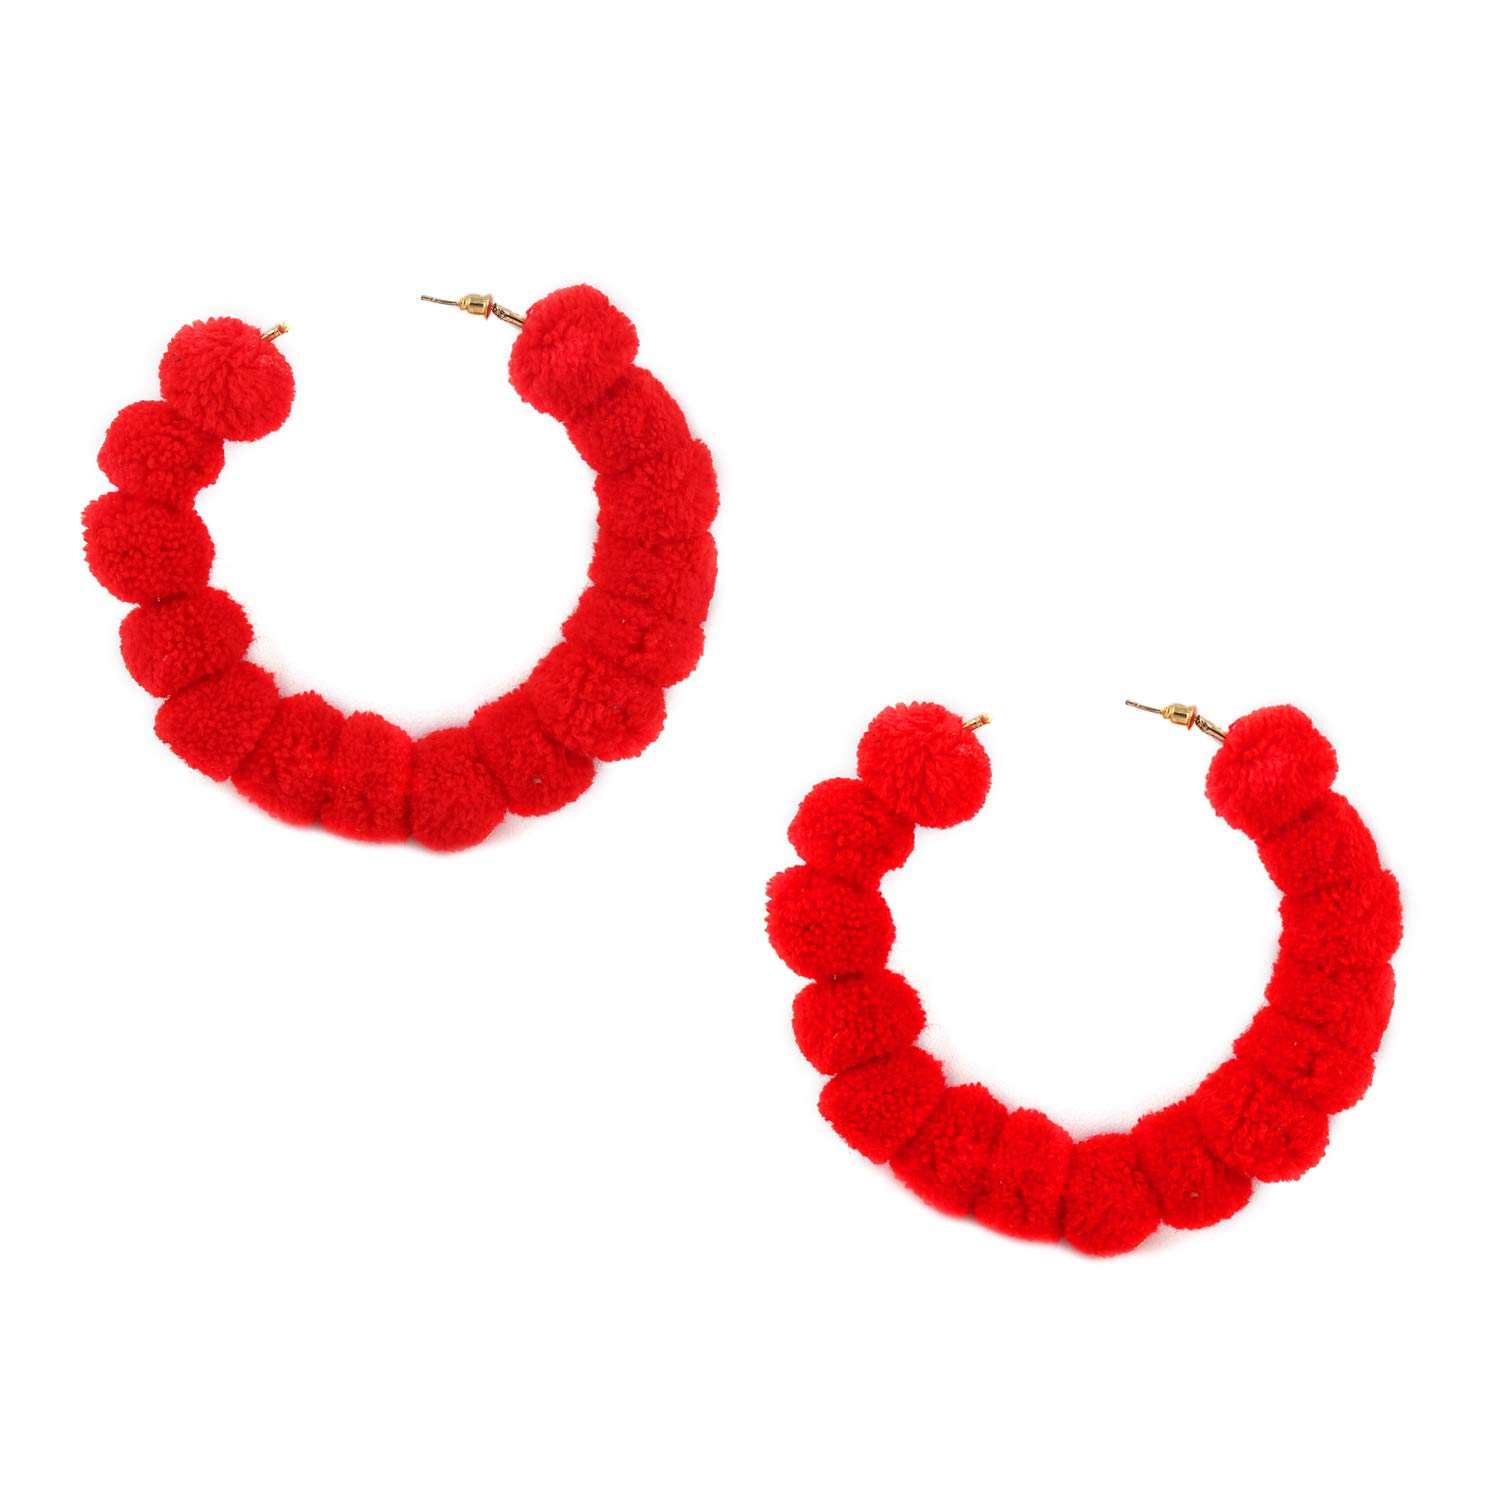 648aaf62241e74 Amazon.com: ASHI'S Collection Hand crafted Round circle Red Pom Pom Hoop  earring for women & girls: Jewelry